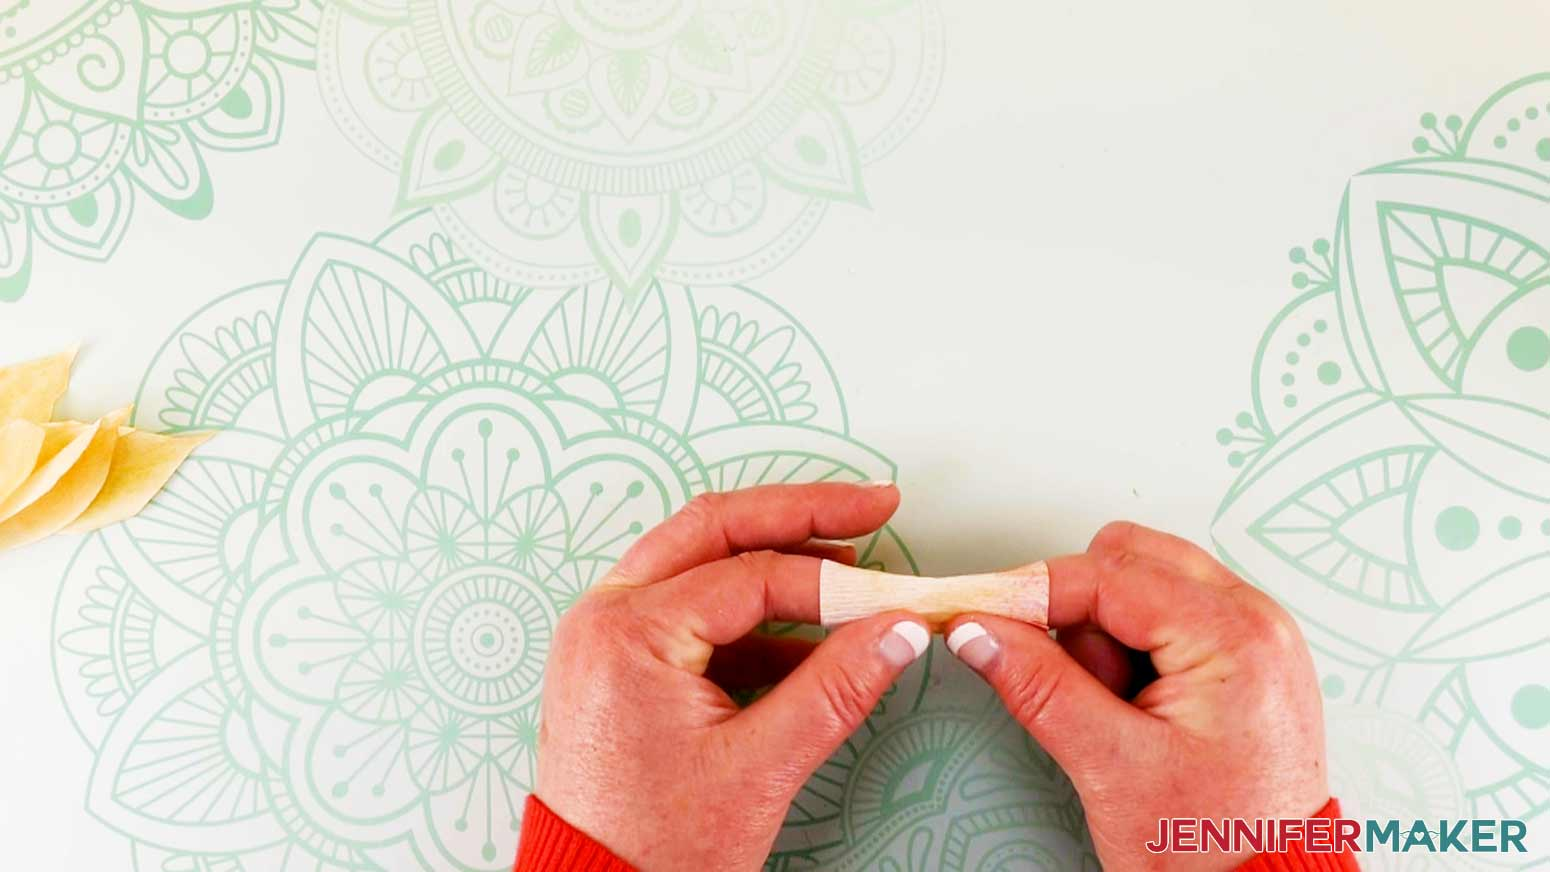 Gluing rectangle into tube shape of daffodil flower fairy doll